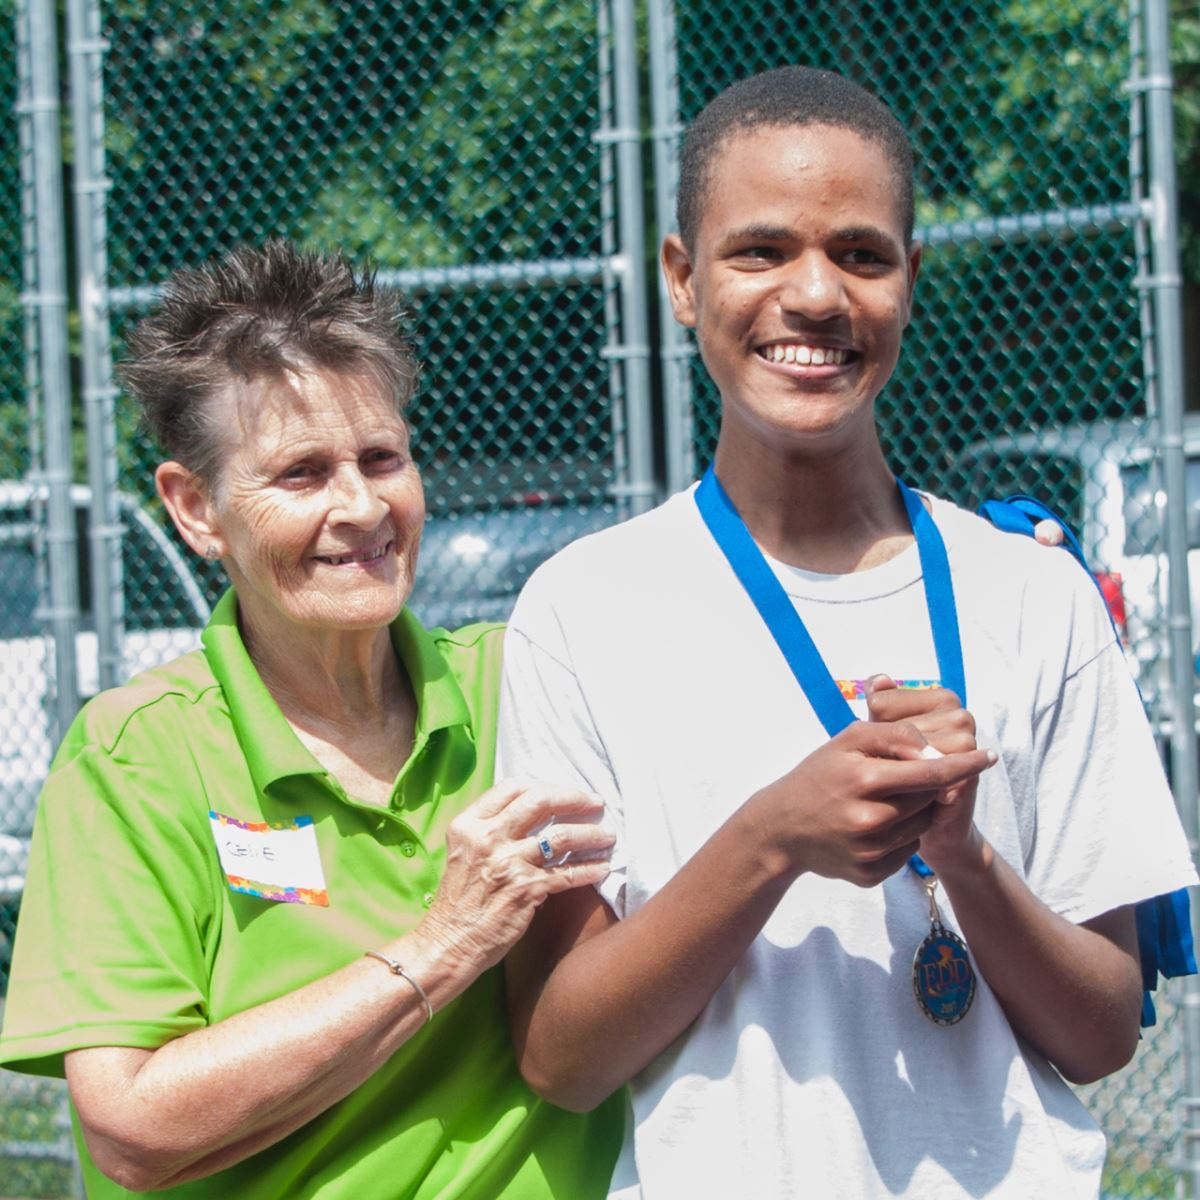 EDD Volunteer and Pickleball player smiles after receiving his medal